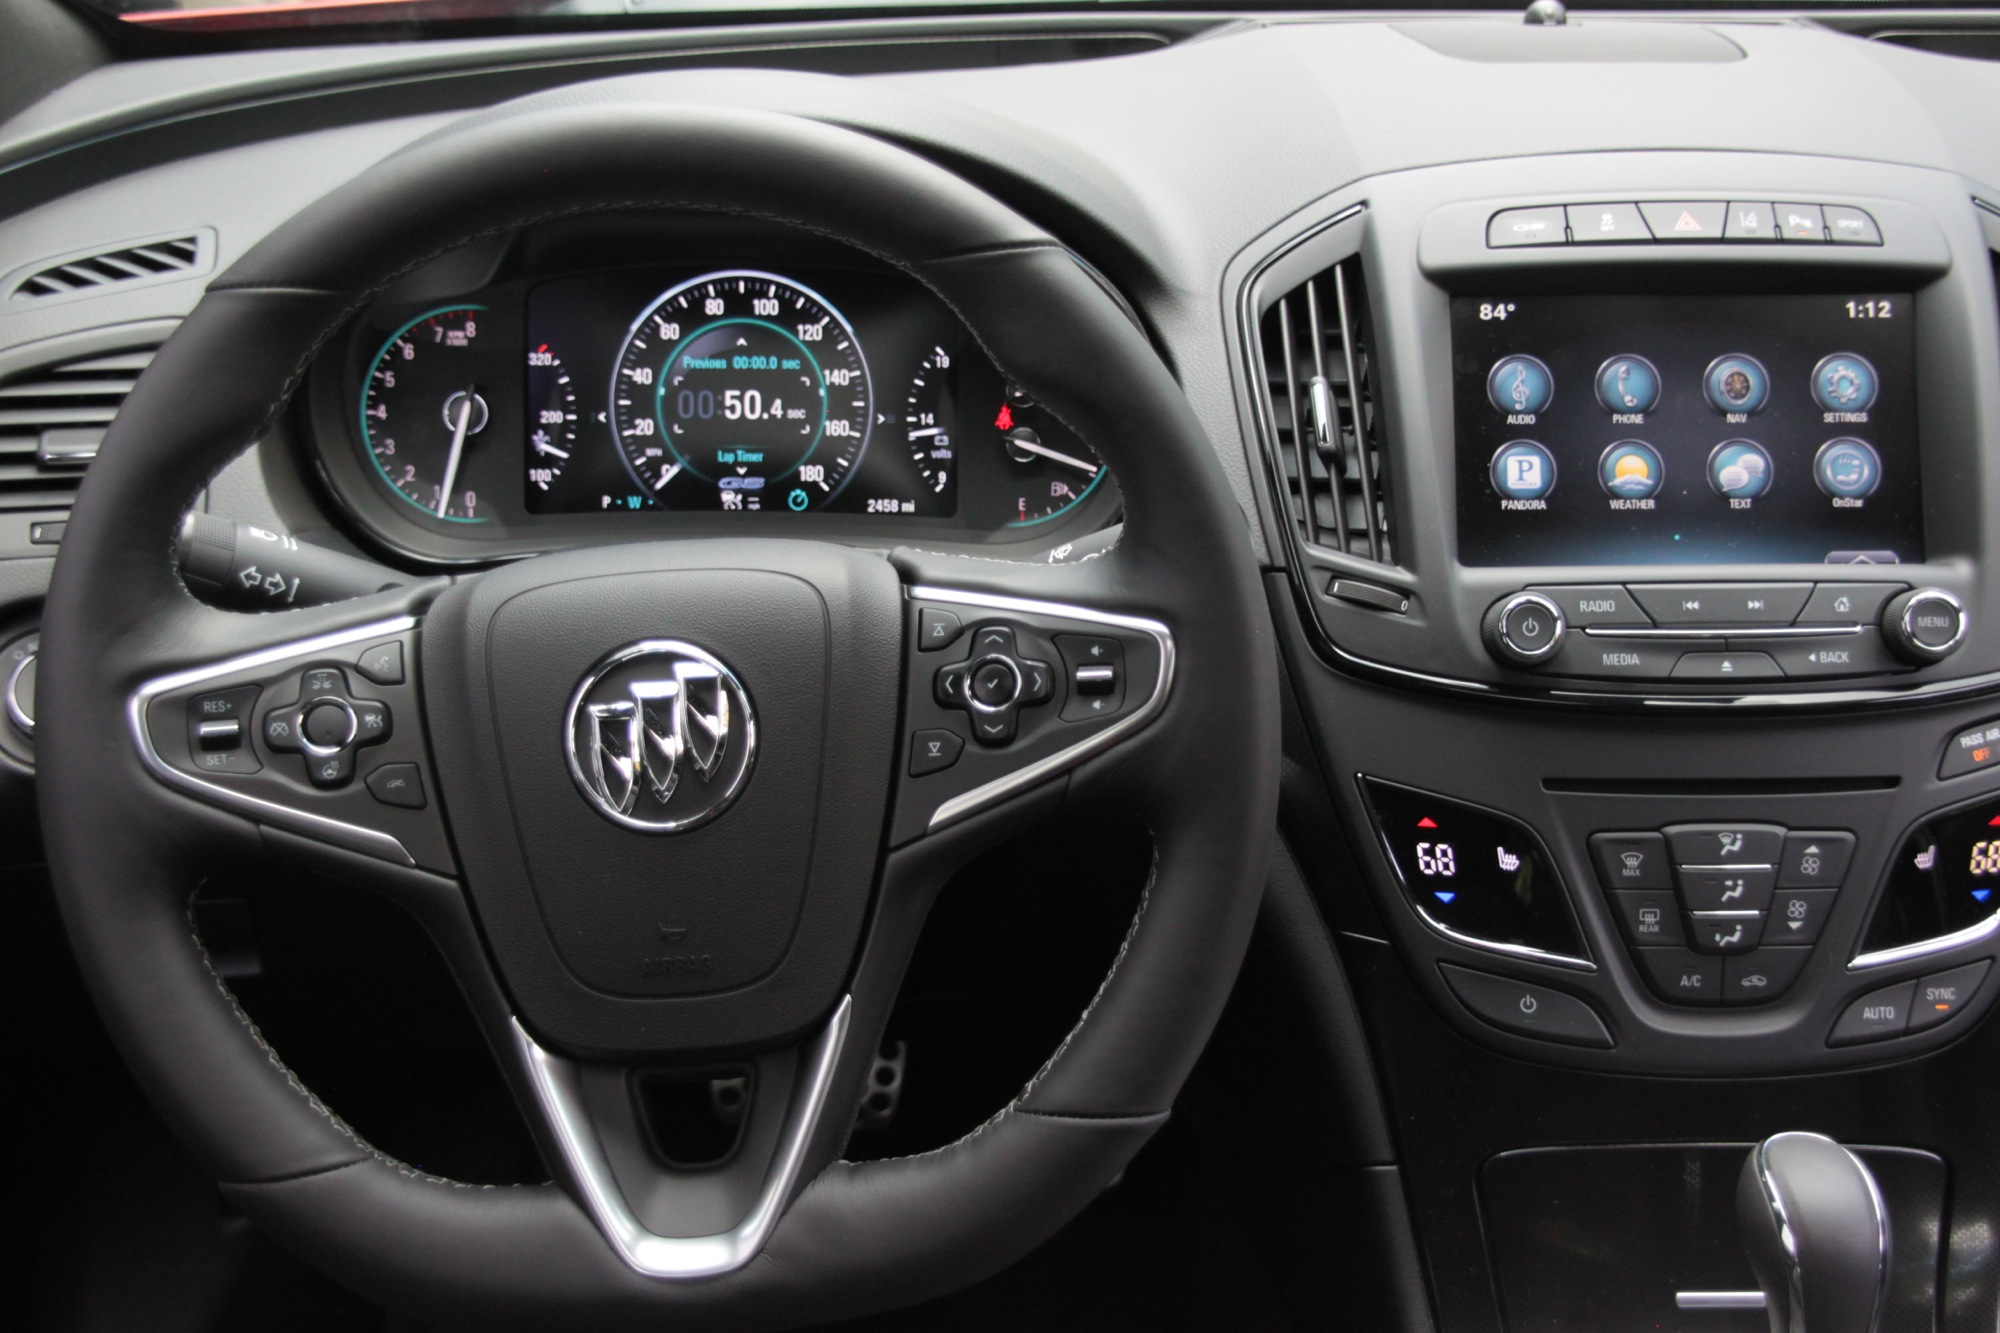 2015 buick regal gs awd review sam 39 s thoughts. Black Bedroom Furniture Sets. Home Design Ideas